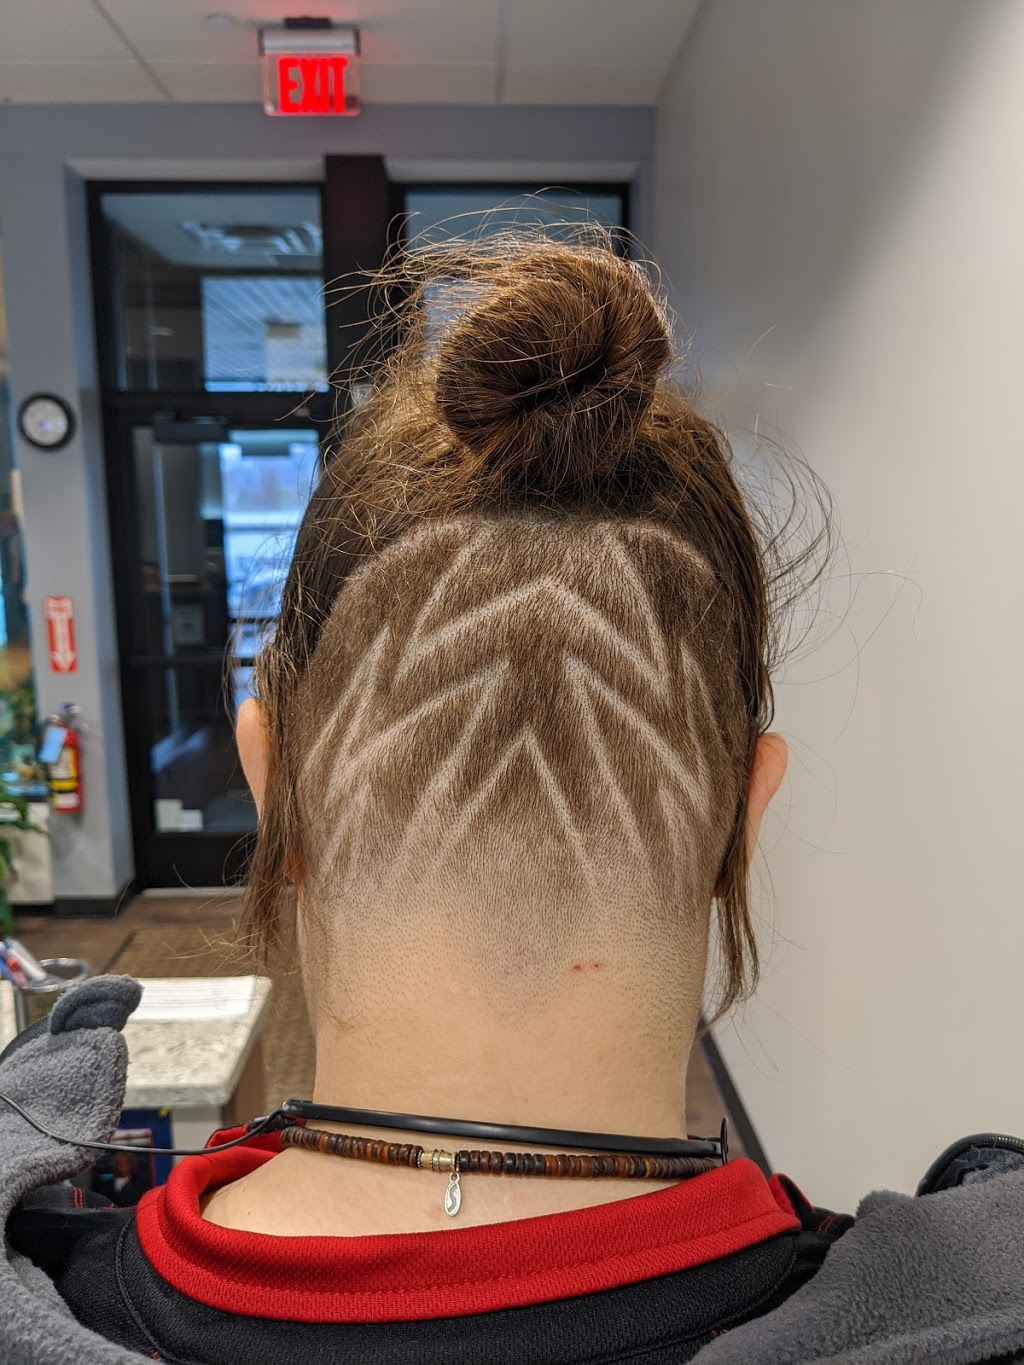 Masters Touch Barbershop LLC - hair care  | Photo 1 of 6 | Address: 31120 Vine St, Willowick, OH 44095, USA | Phone: (216) 298-3993